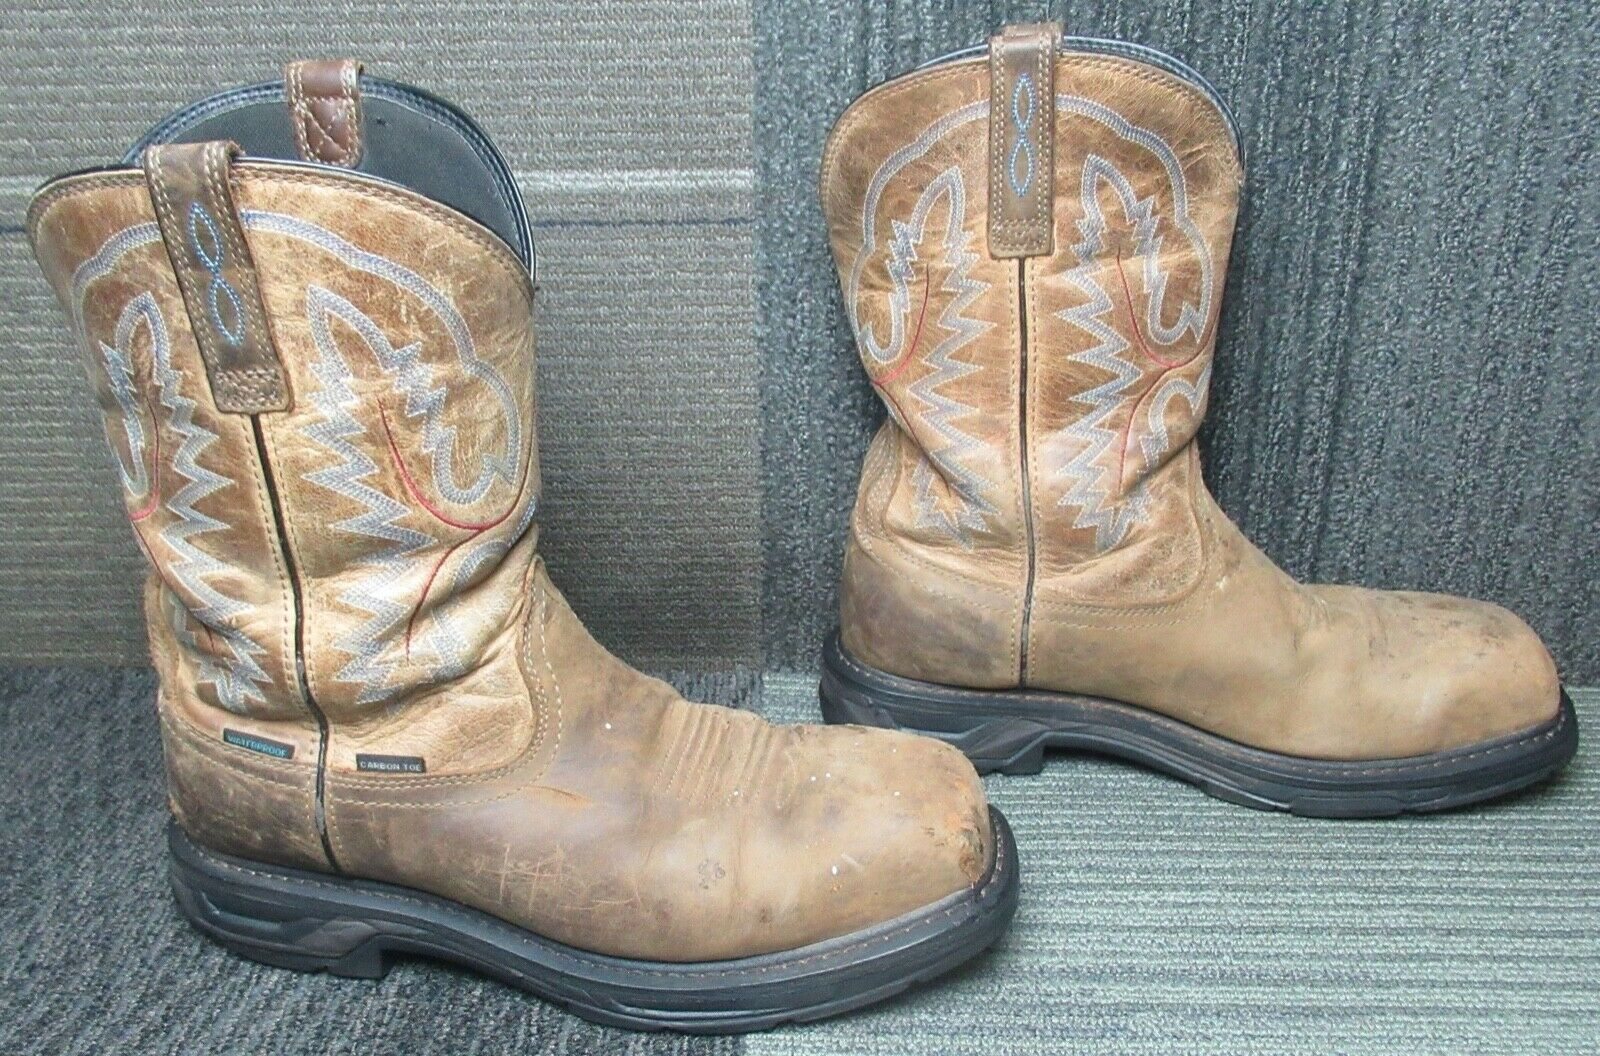 Mens ARIAT Workhog XT Waterproof Carbon Toe Leather Work Boots Sz 11 EE - $44.52